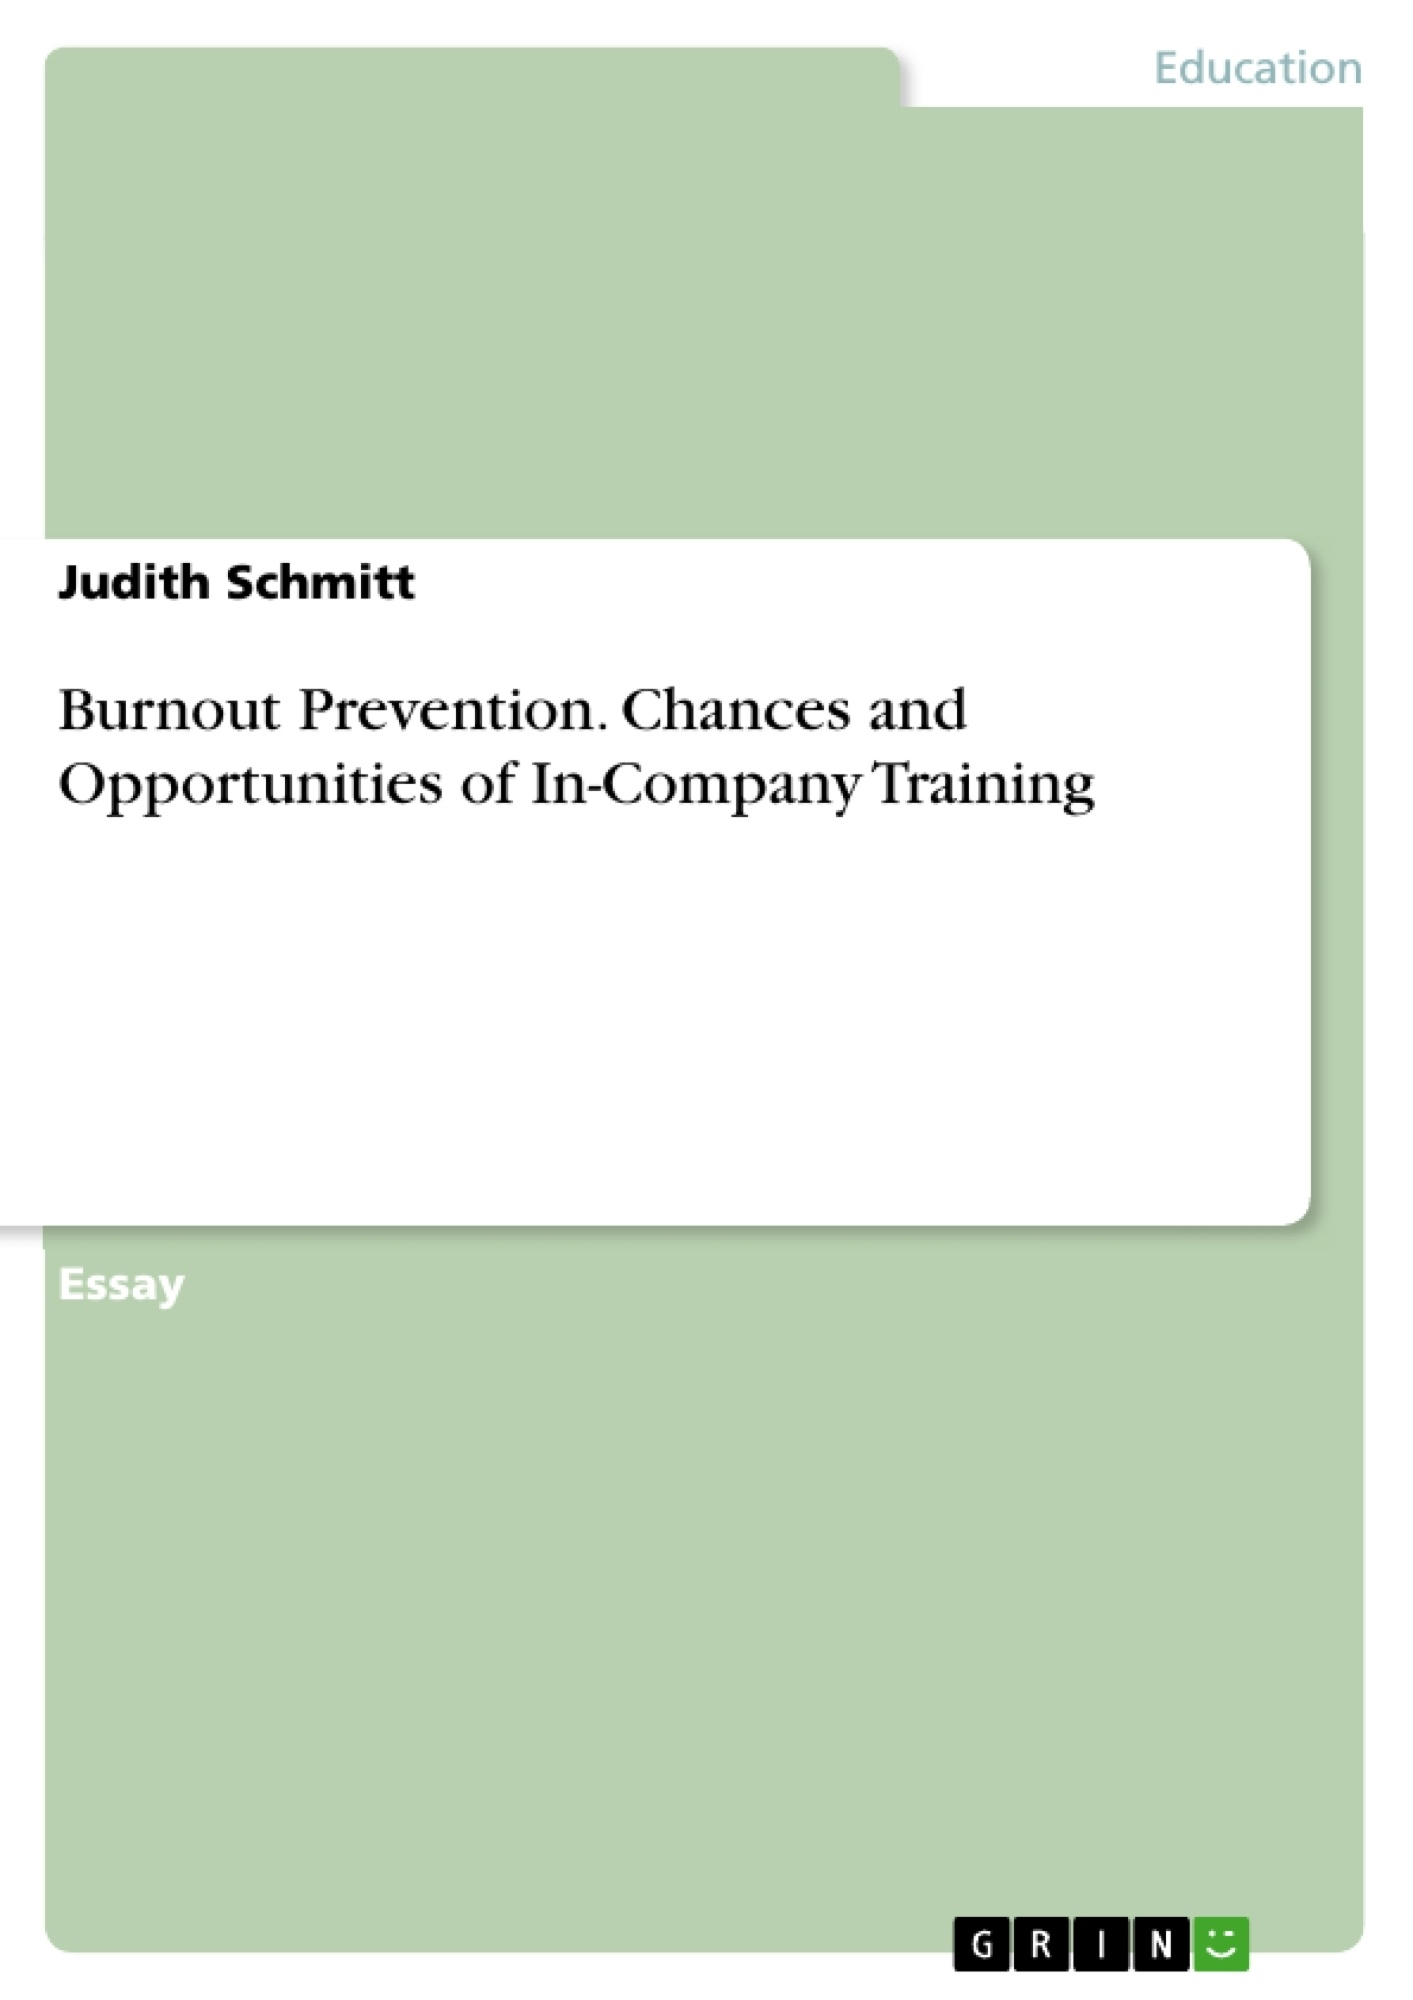 Title: Burnout Prevention. Chances and Opportunities of In-Company Training